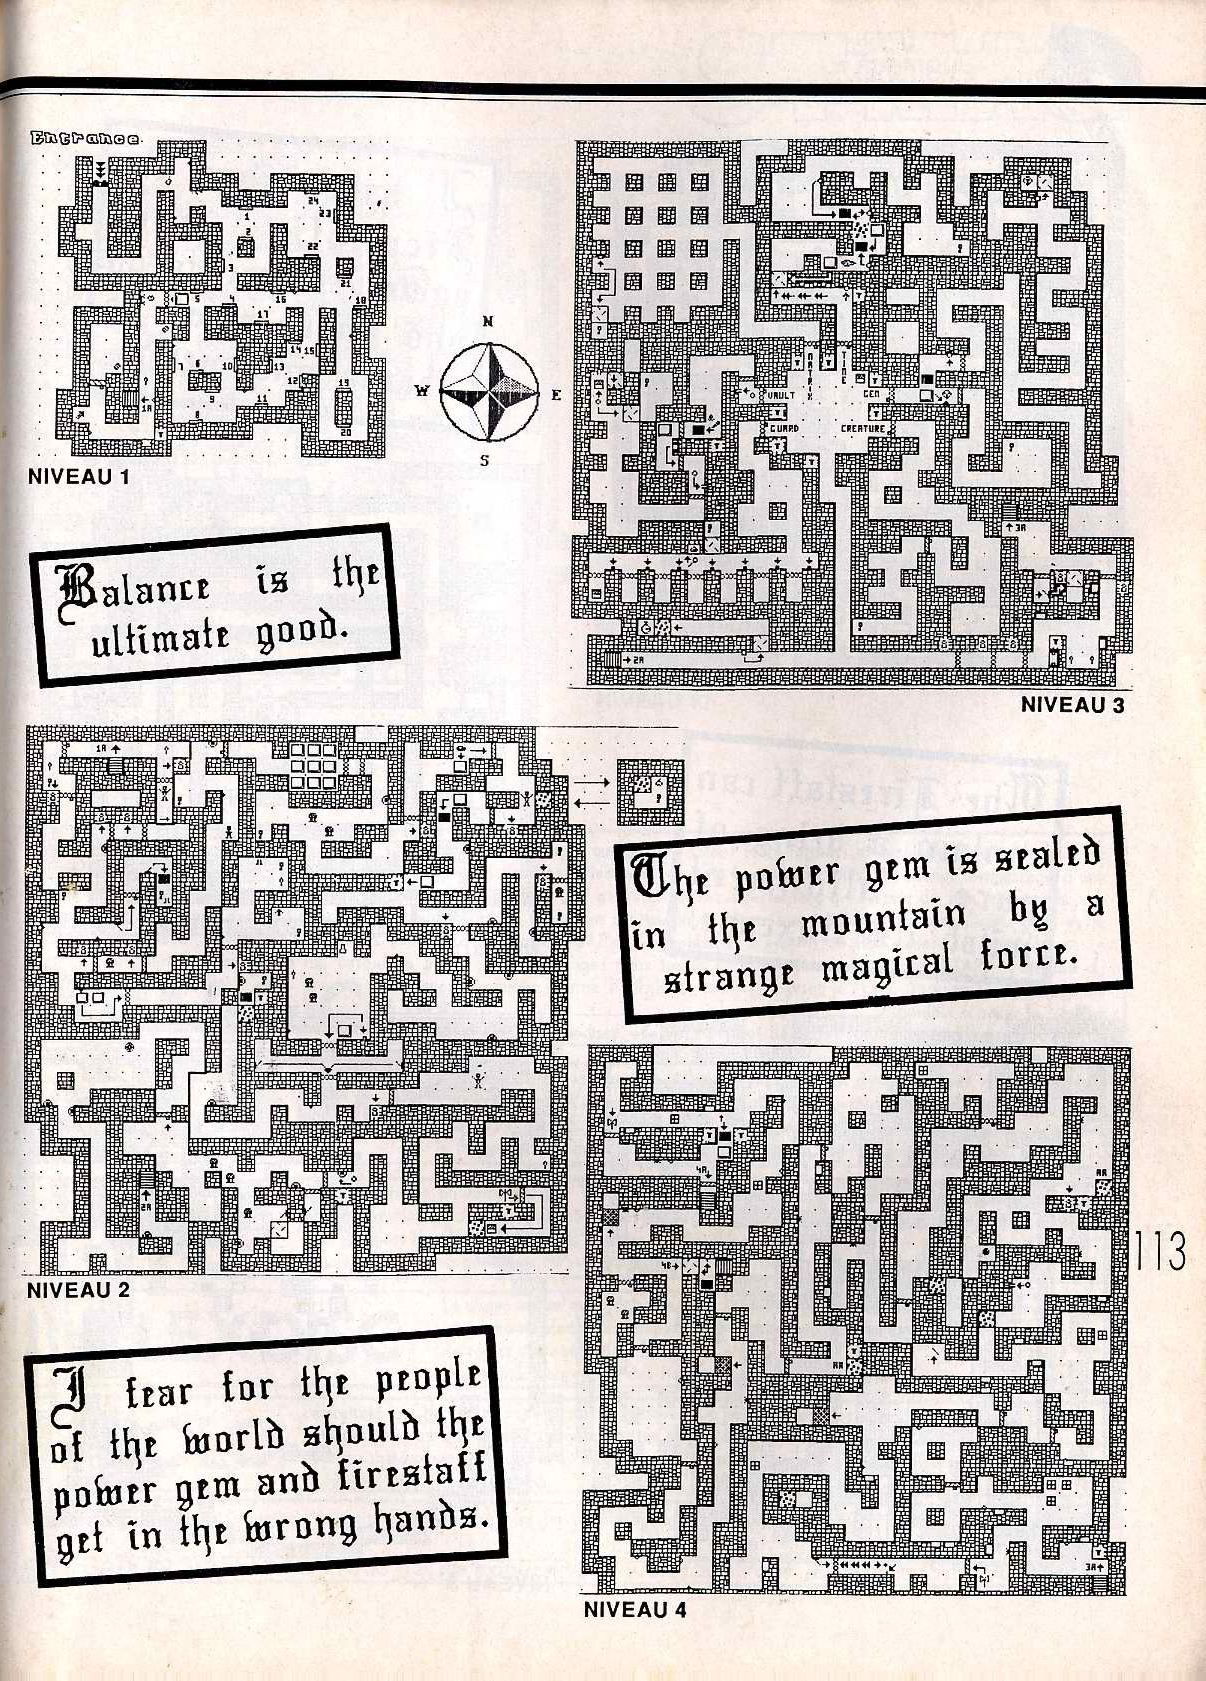 Dungeon Master for Atari ST Guide published in French magazine 'ST Magazine', Issue #20 June 1988, Page 113